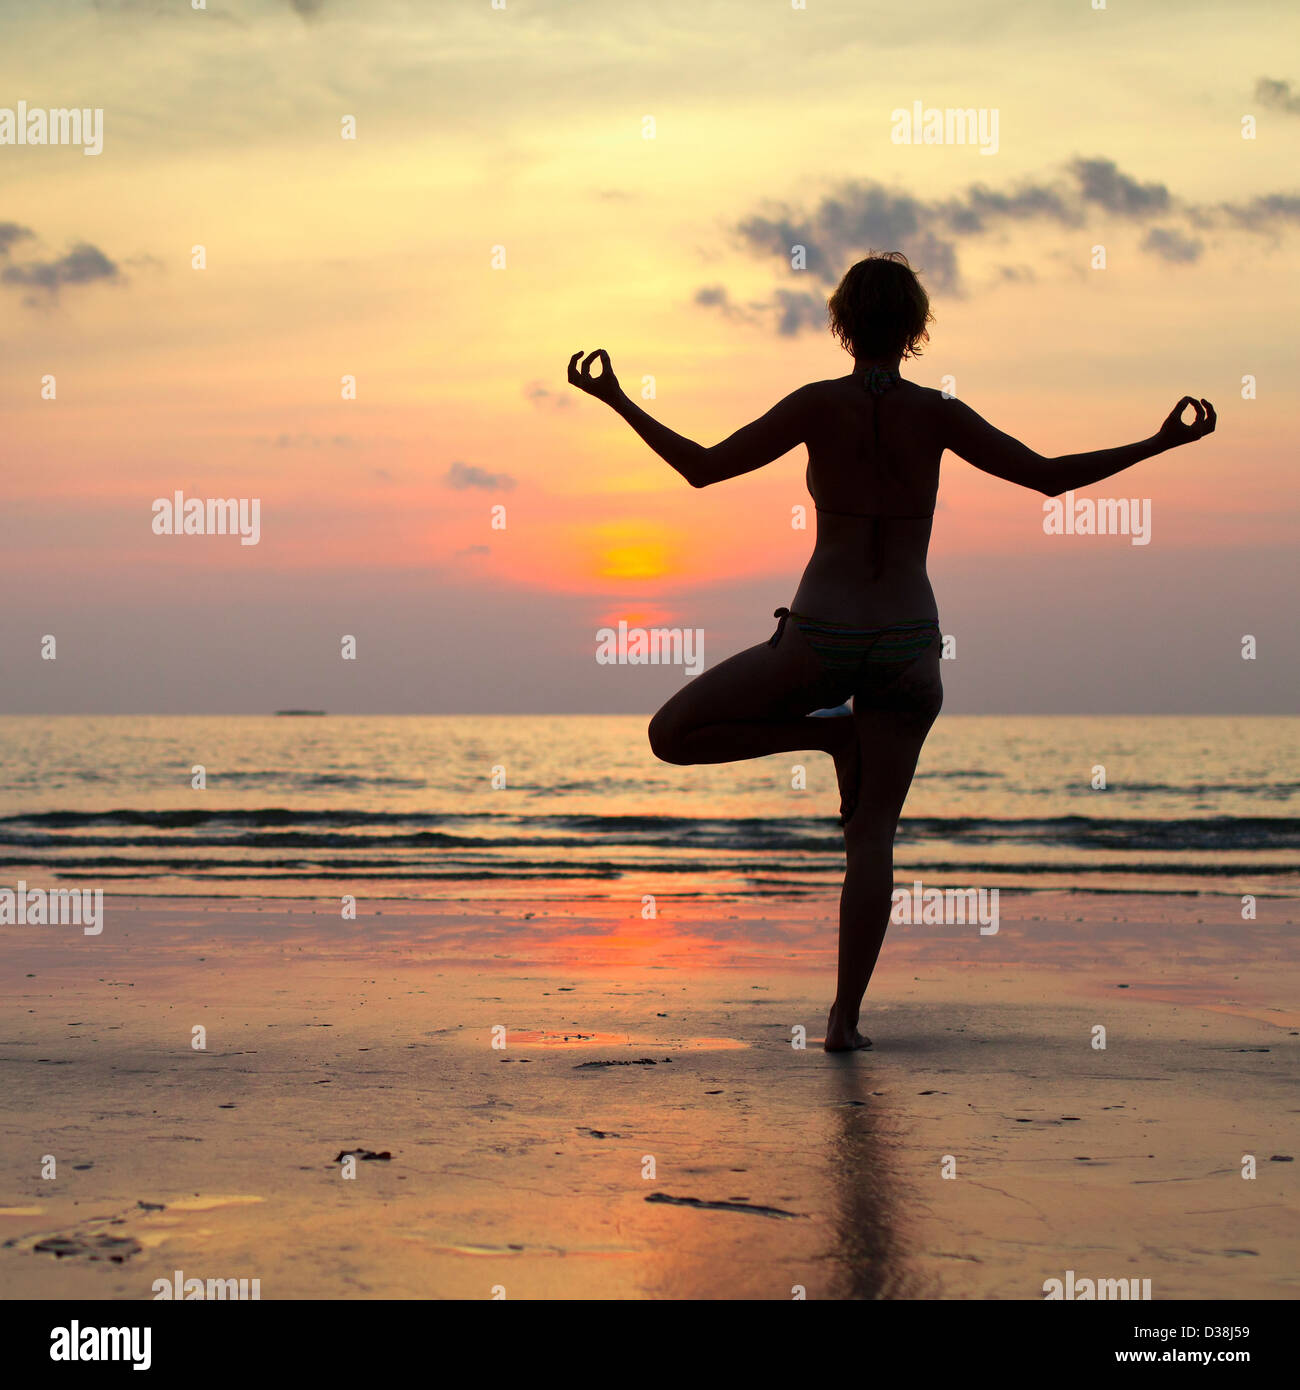 Yoga woman performs an exercise on the beach during sunset, with reflection in water - Stock Image